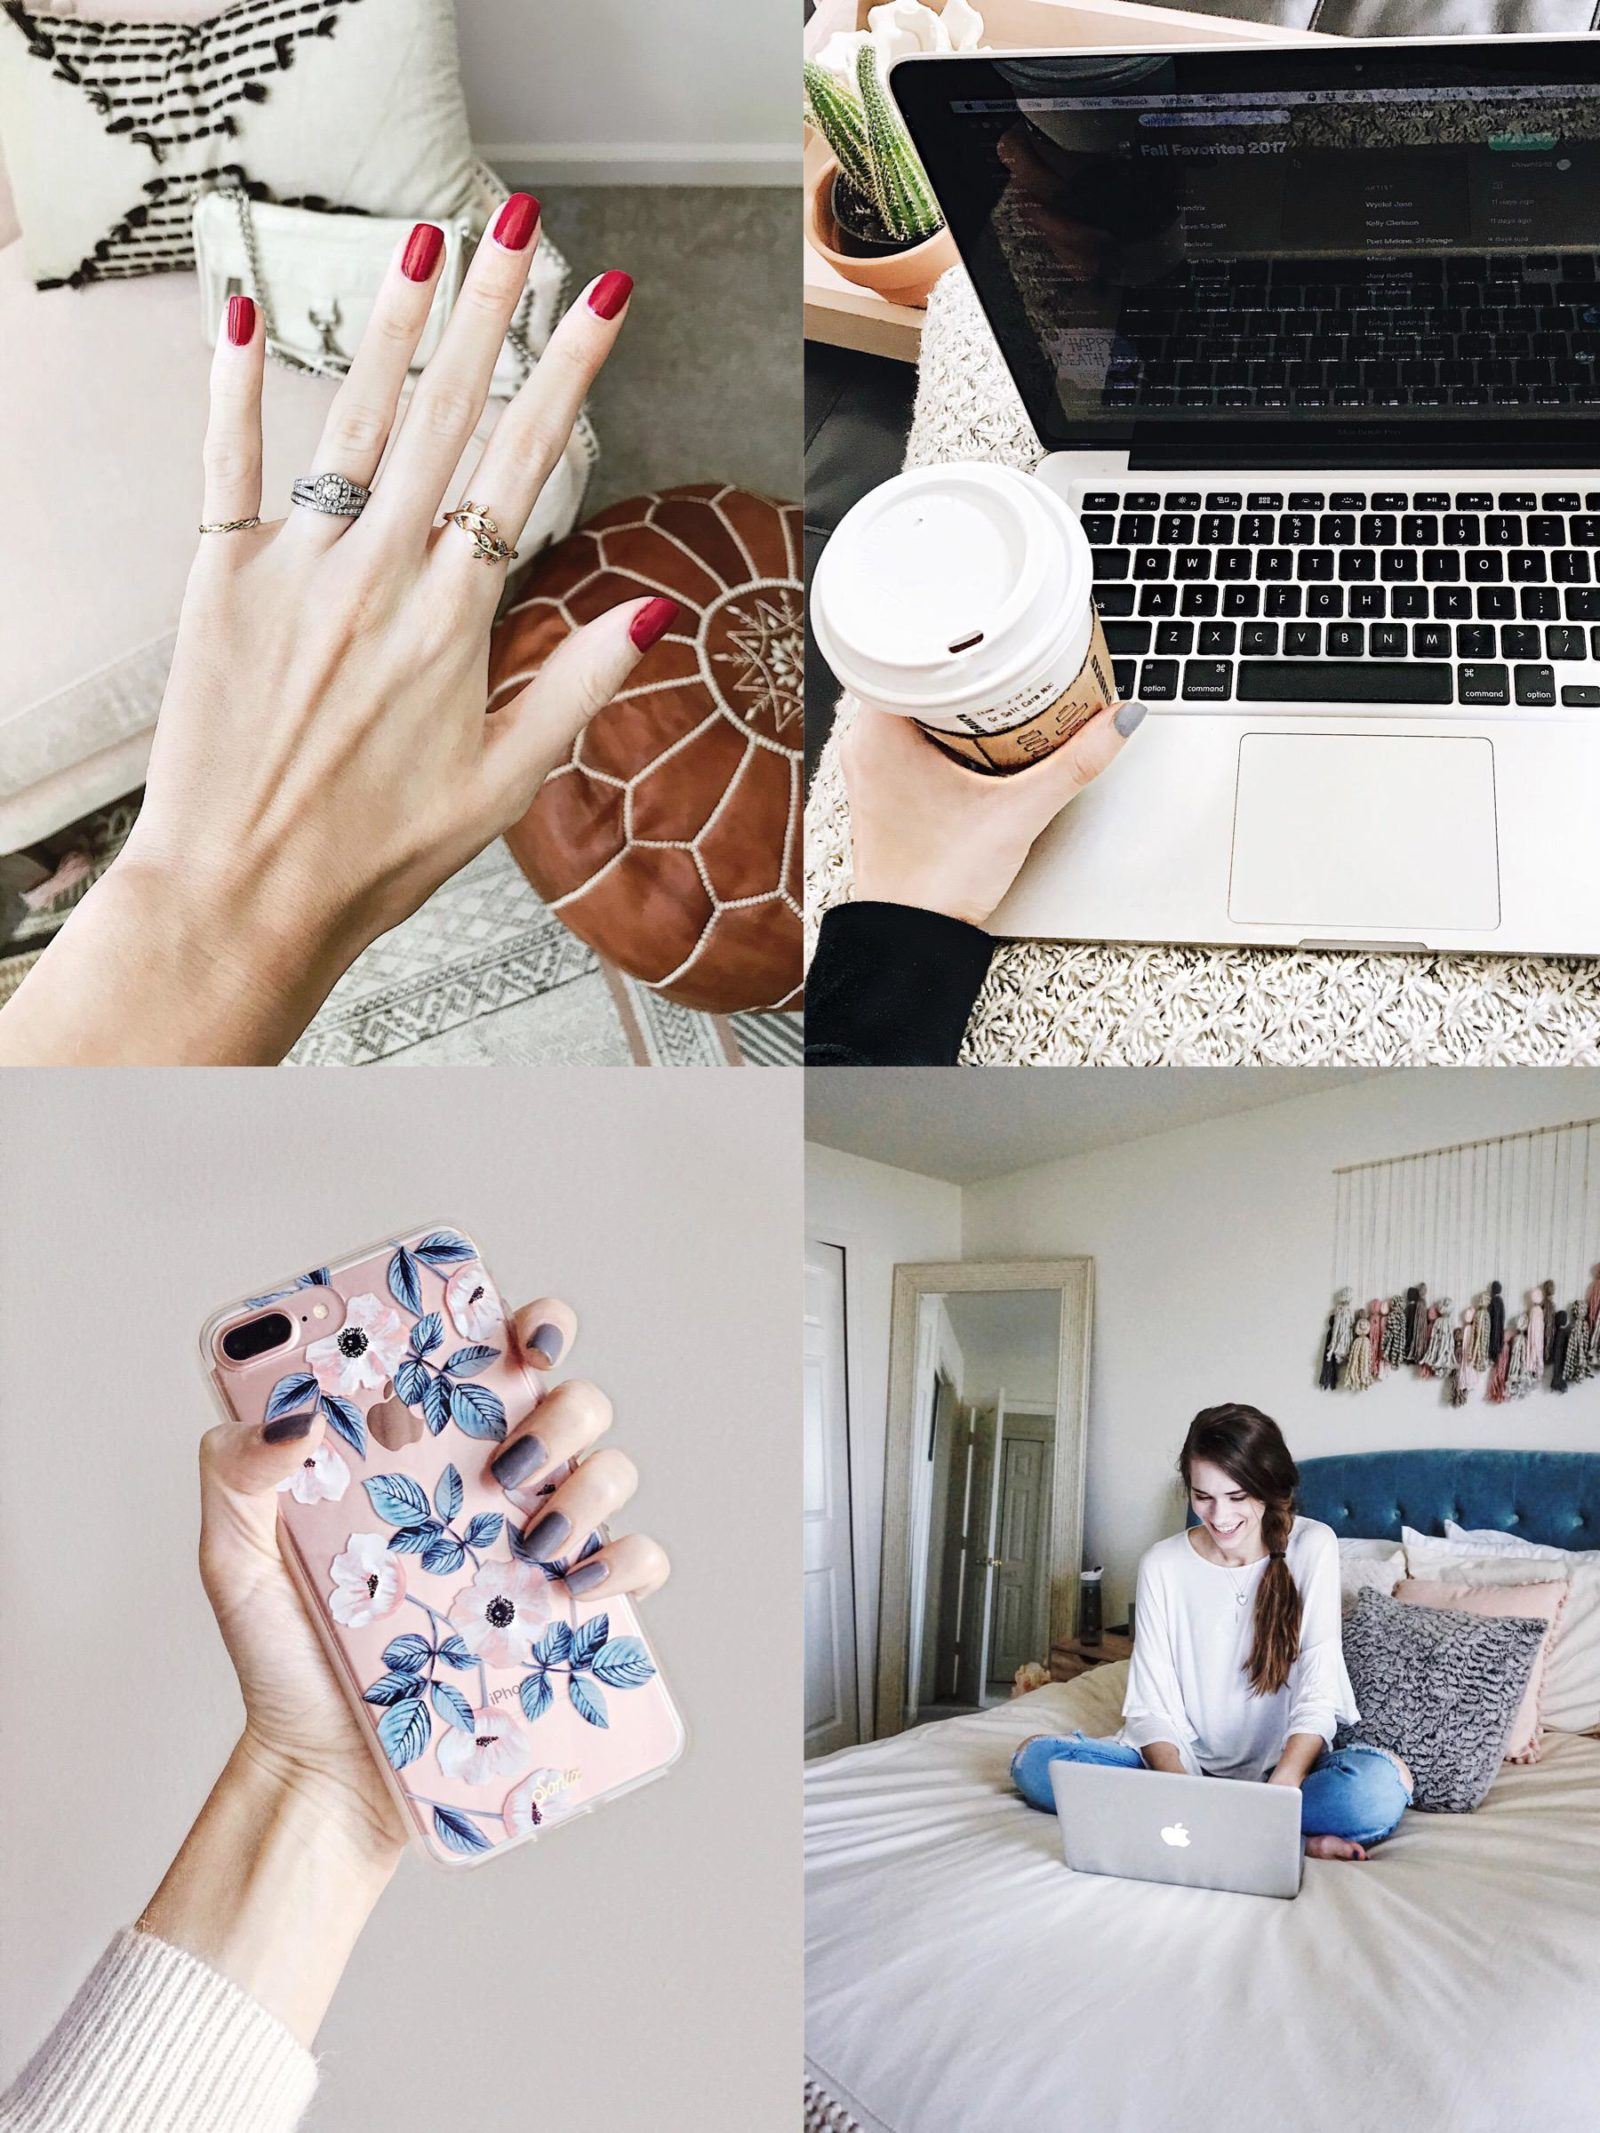 Instagram Content Ideas For Bloggers